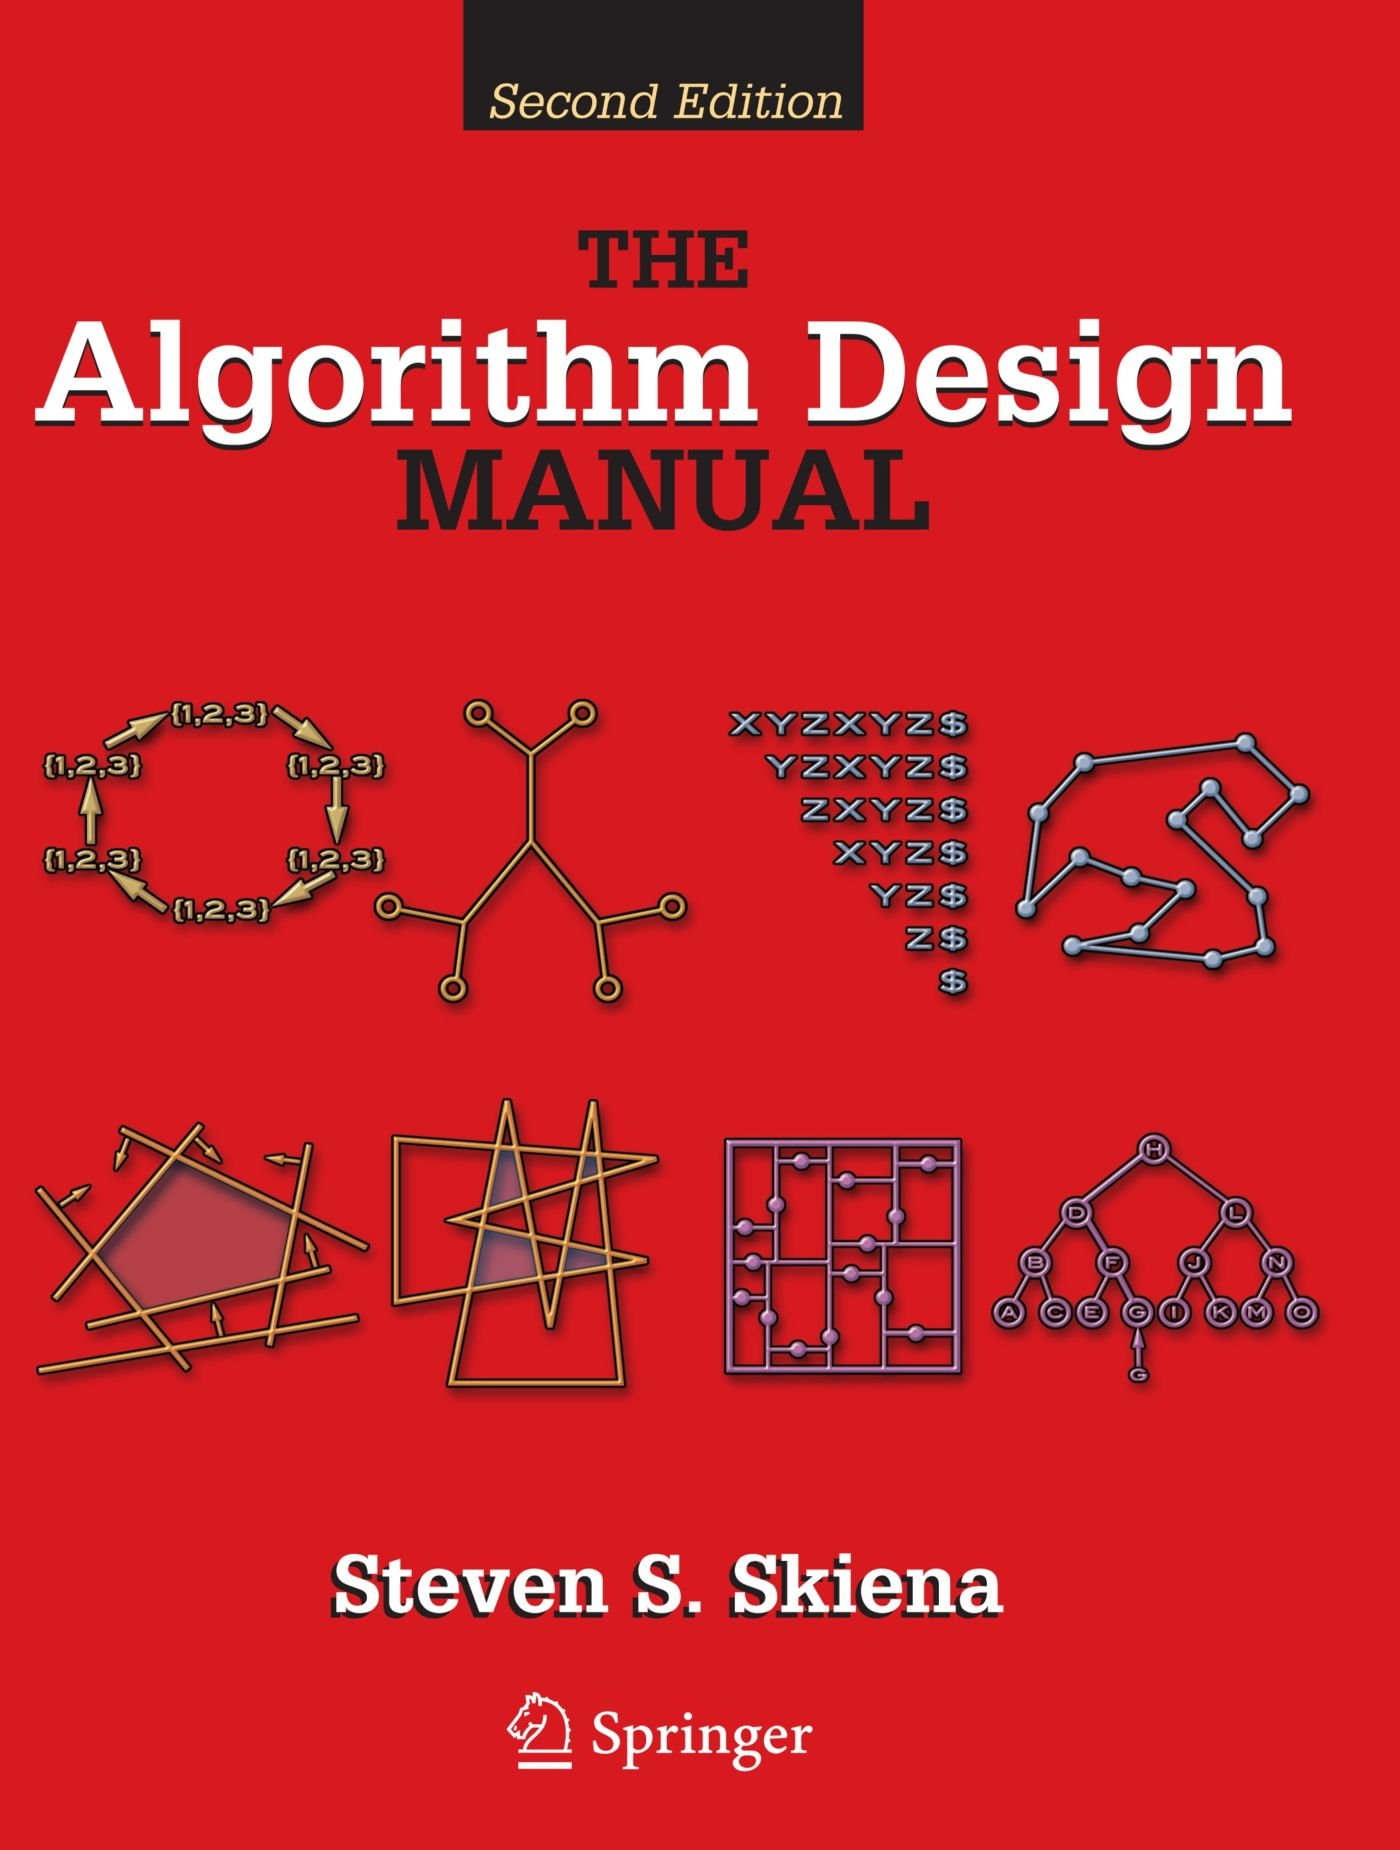 Book: The Algorithm Design Manual by Steven S. Skiena